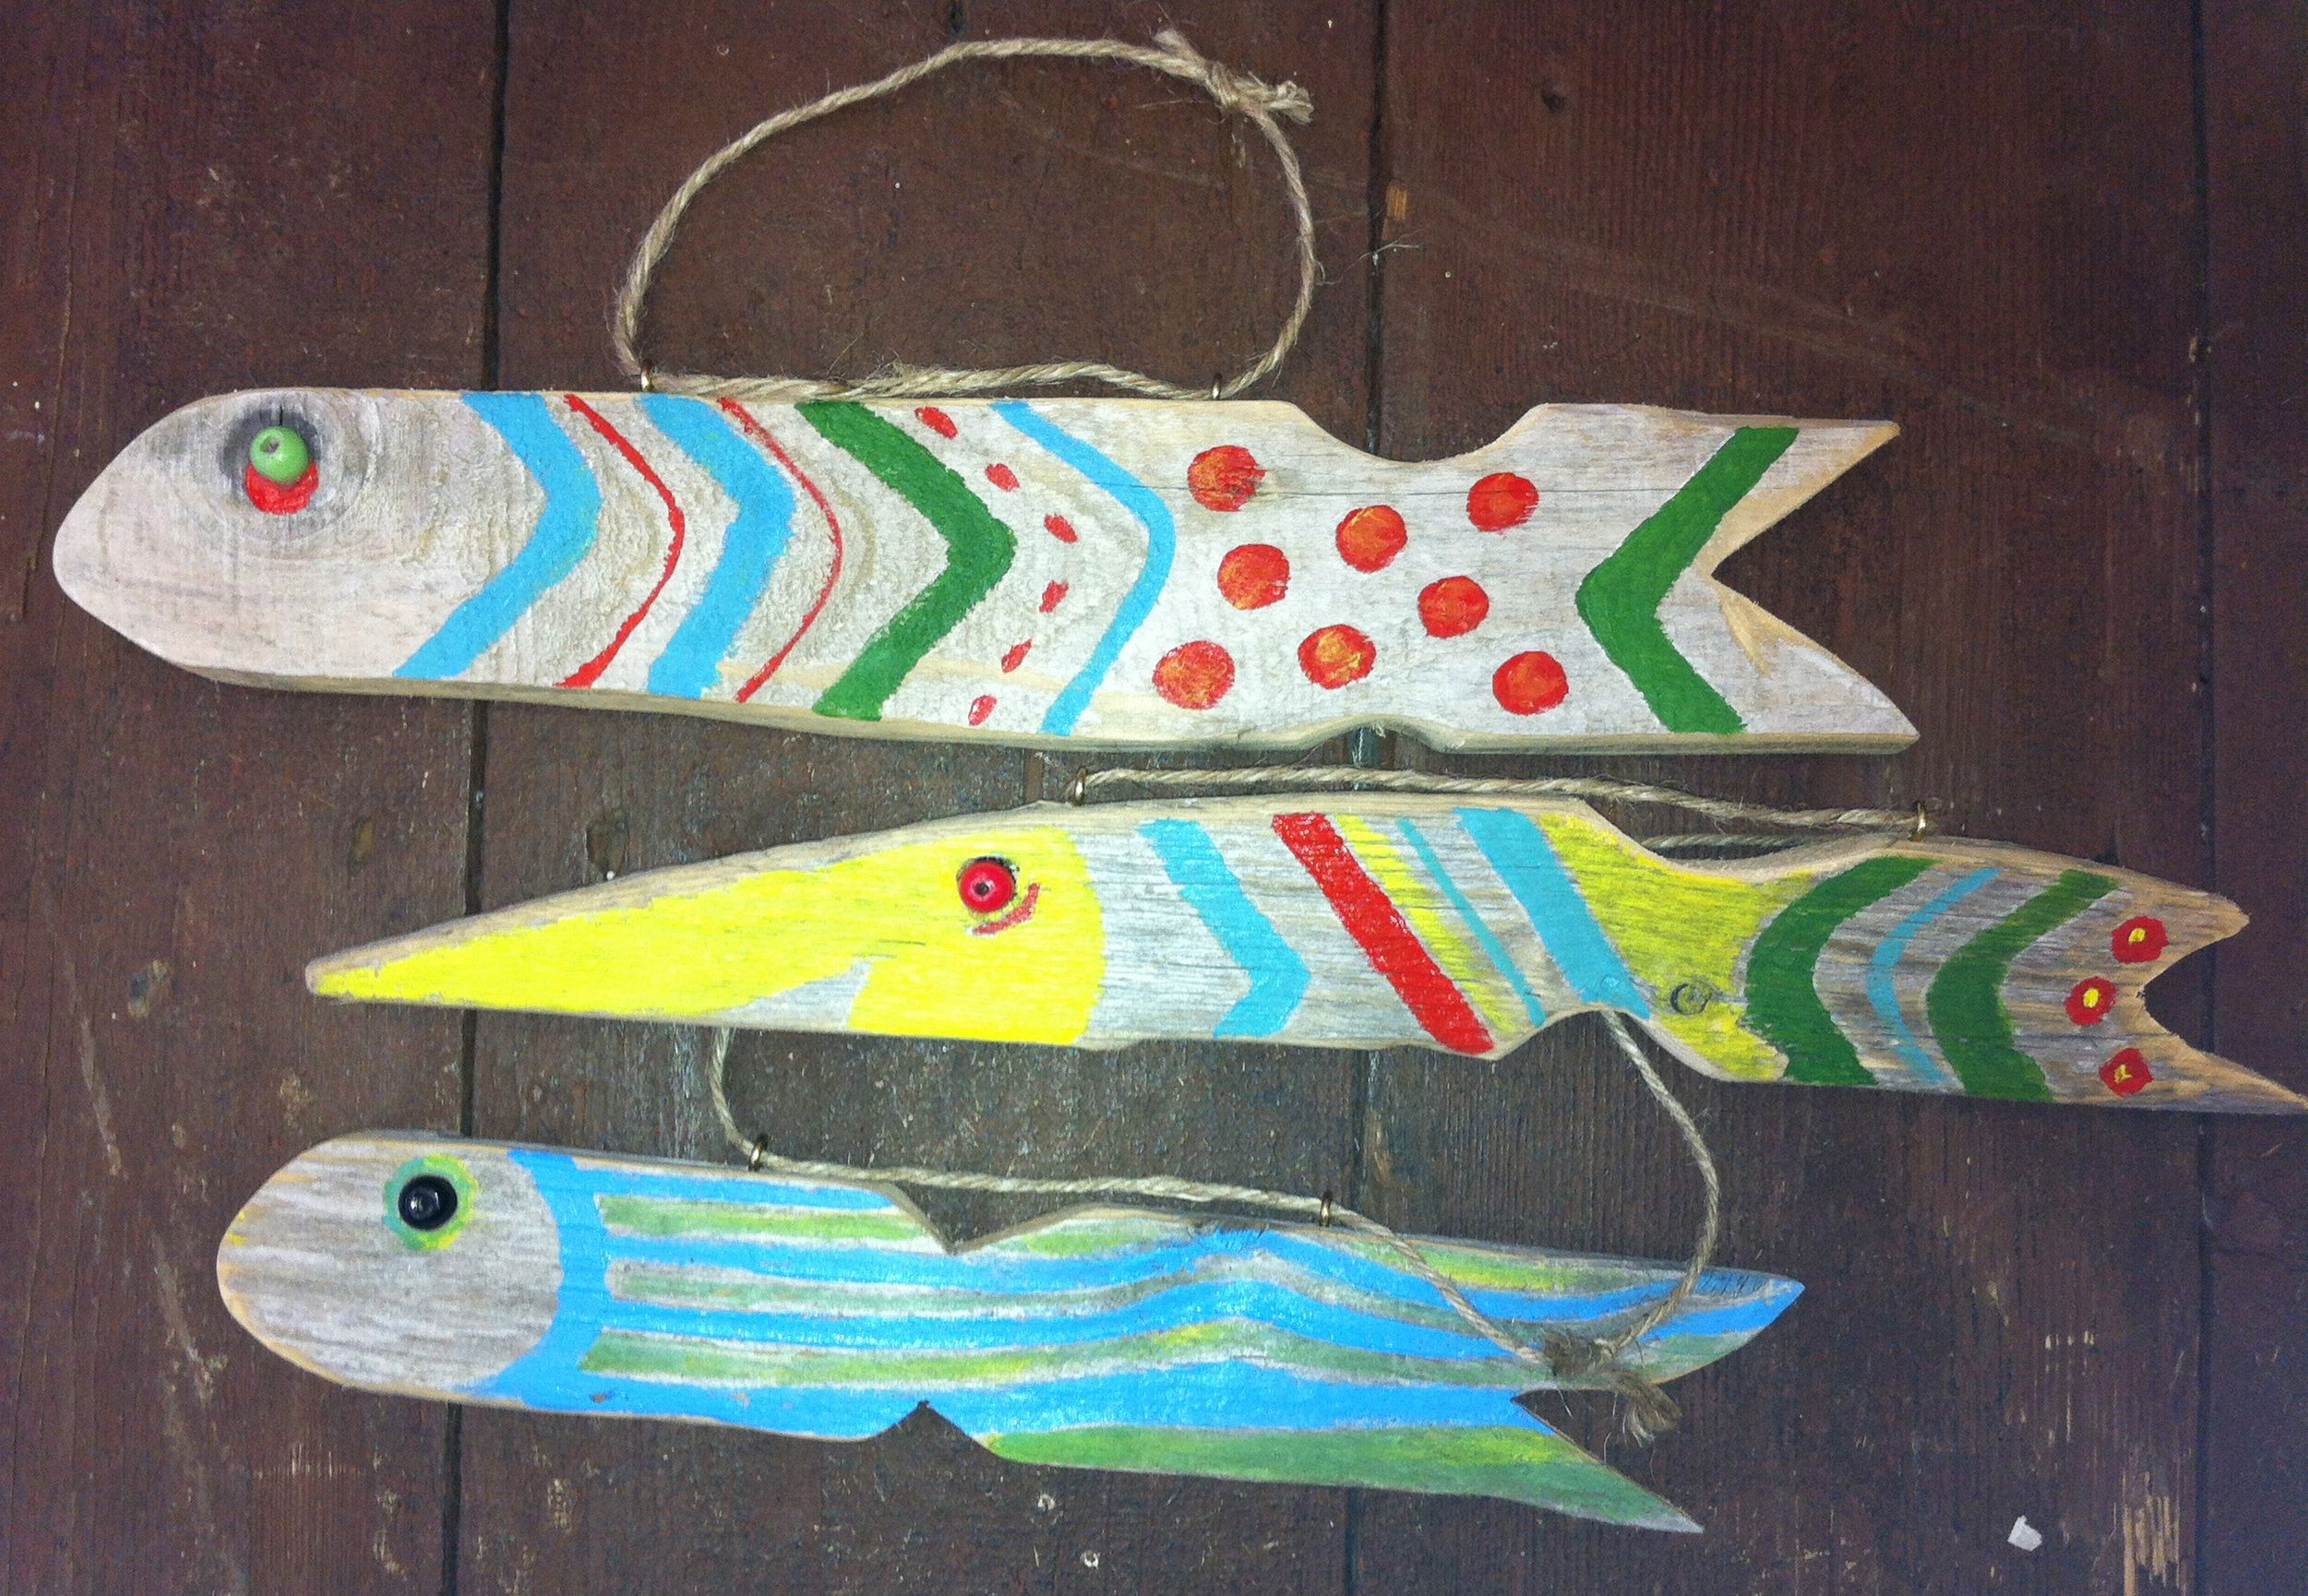 driftwood with acrylic paint  patterns ... decorate a shed or fence?